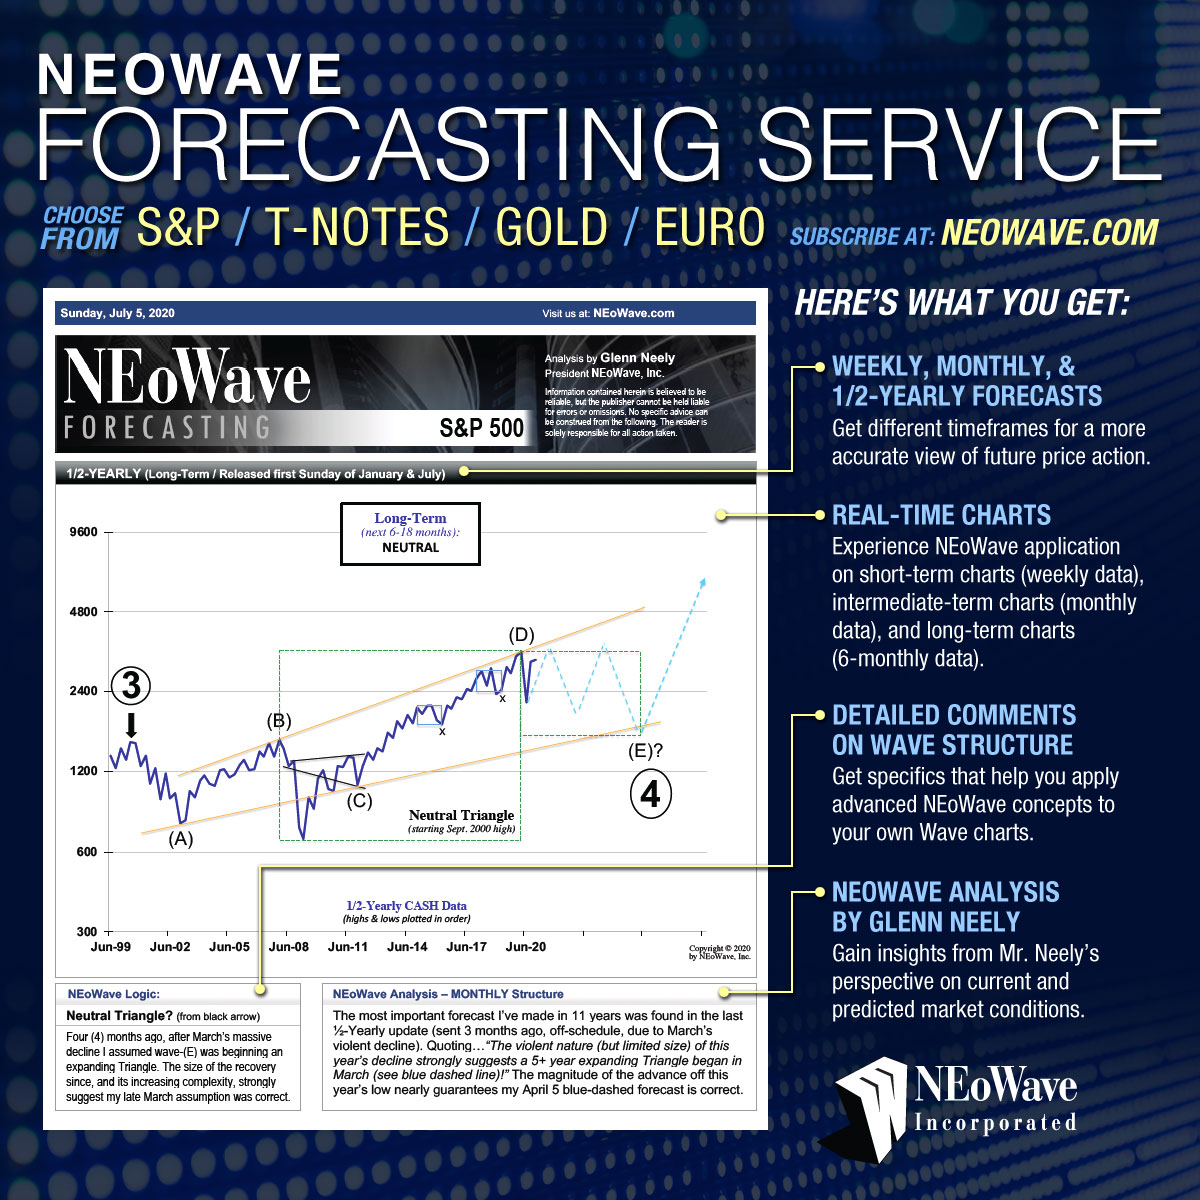 NEoWave Forecasting Services